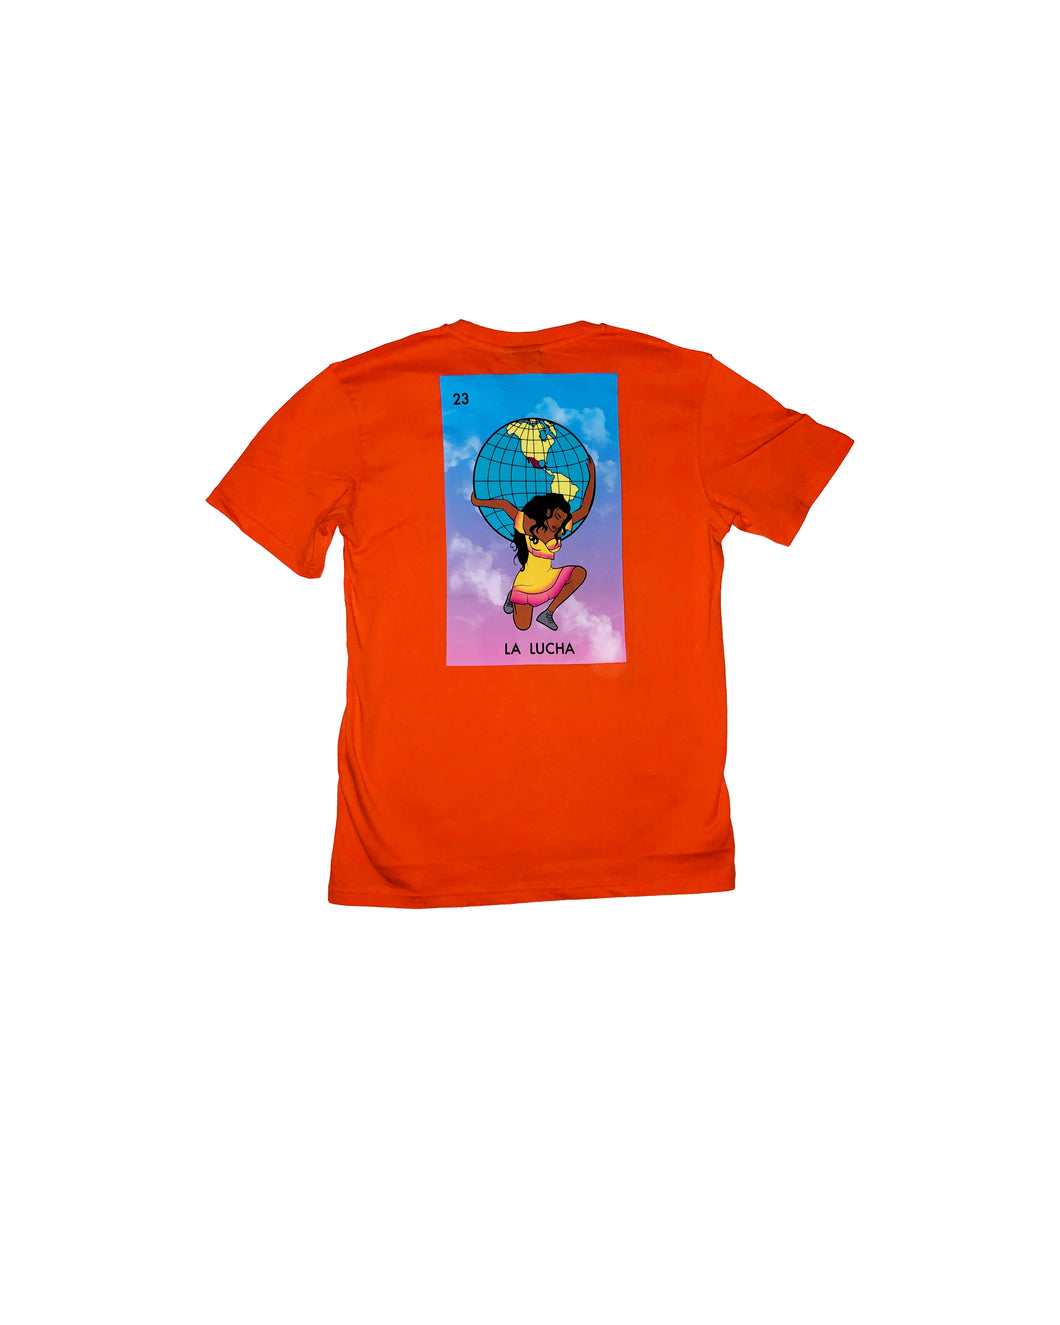 La Lucha Orange Tee - LOTTAWORLDWIDE